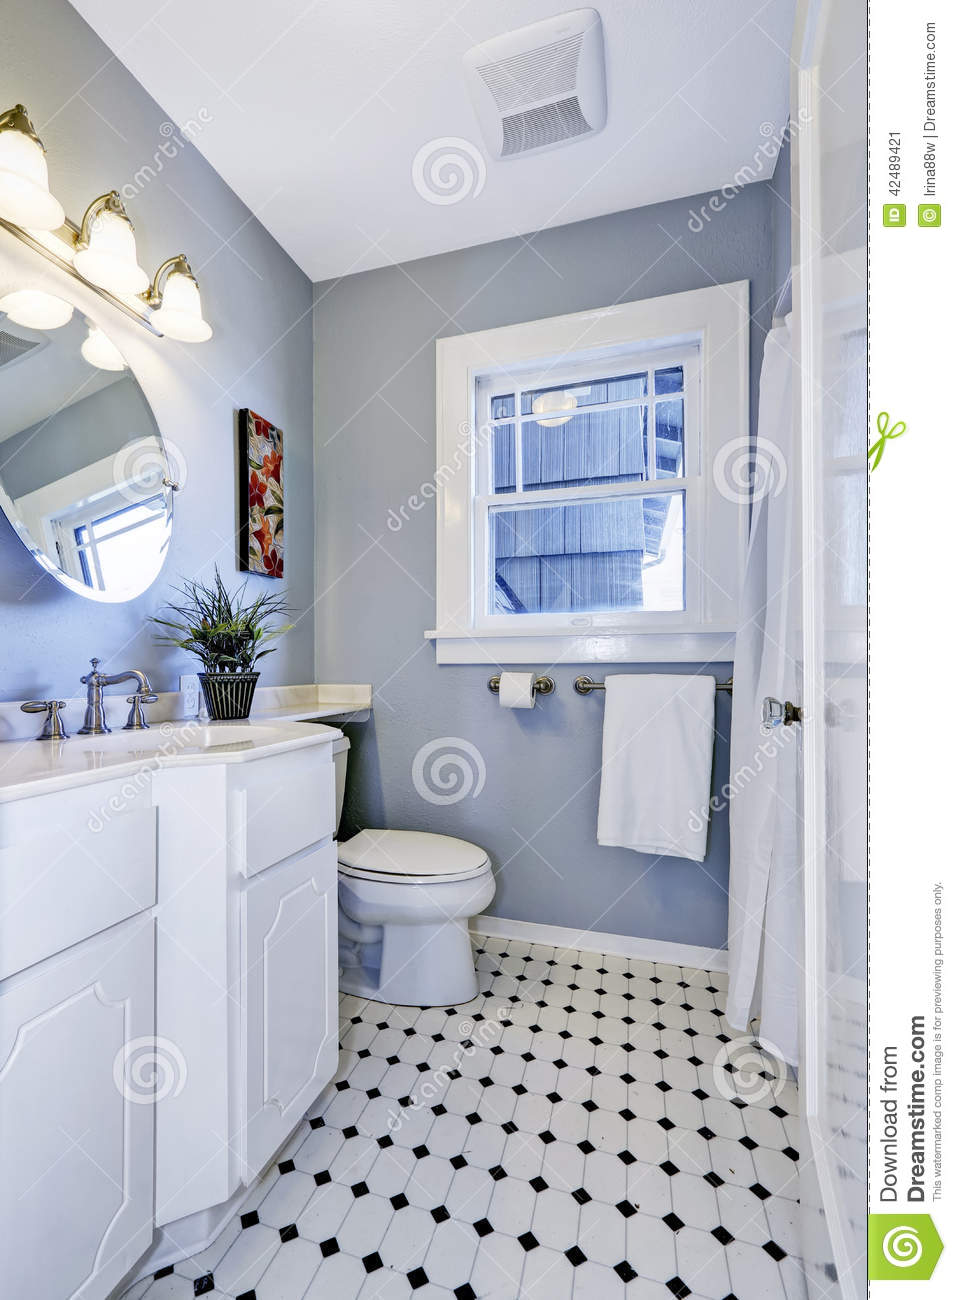 Bright Bathroom Interior In Light Blue Color Stock Image Image Of Bath Mirror 42489421